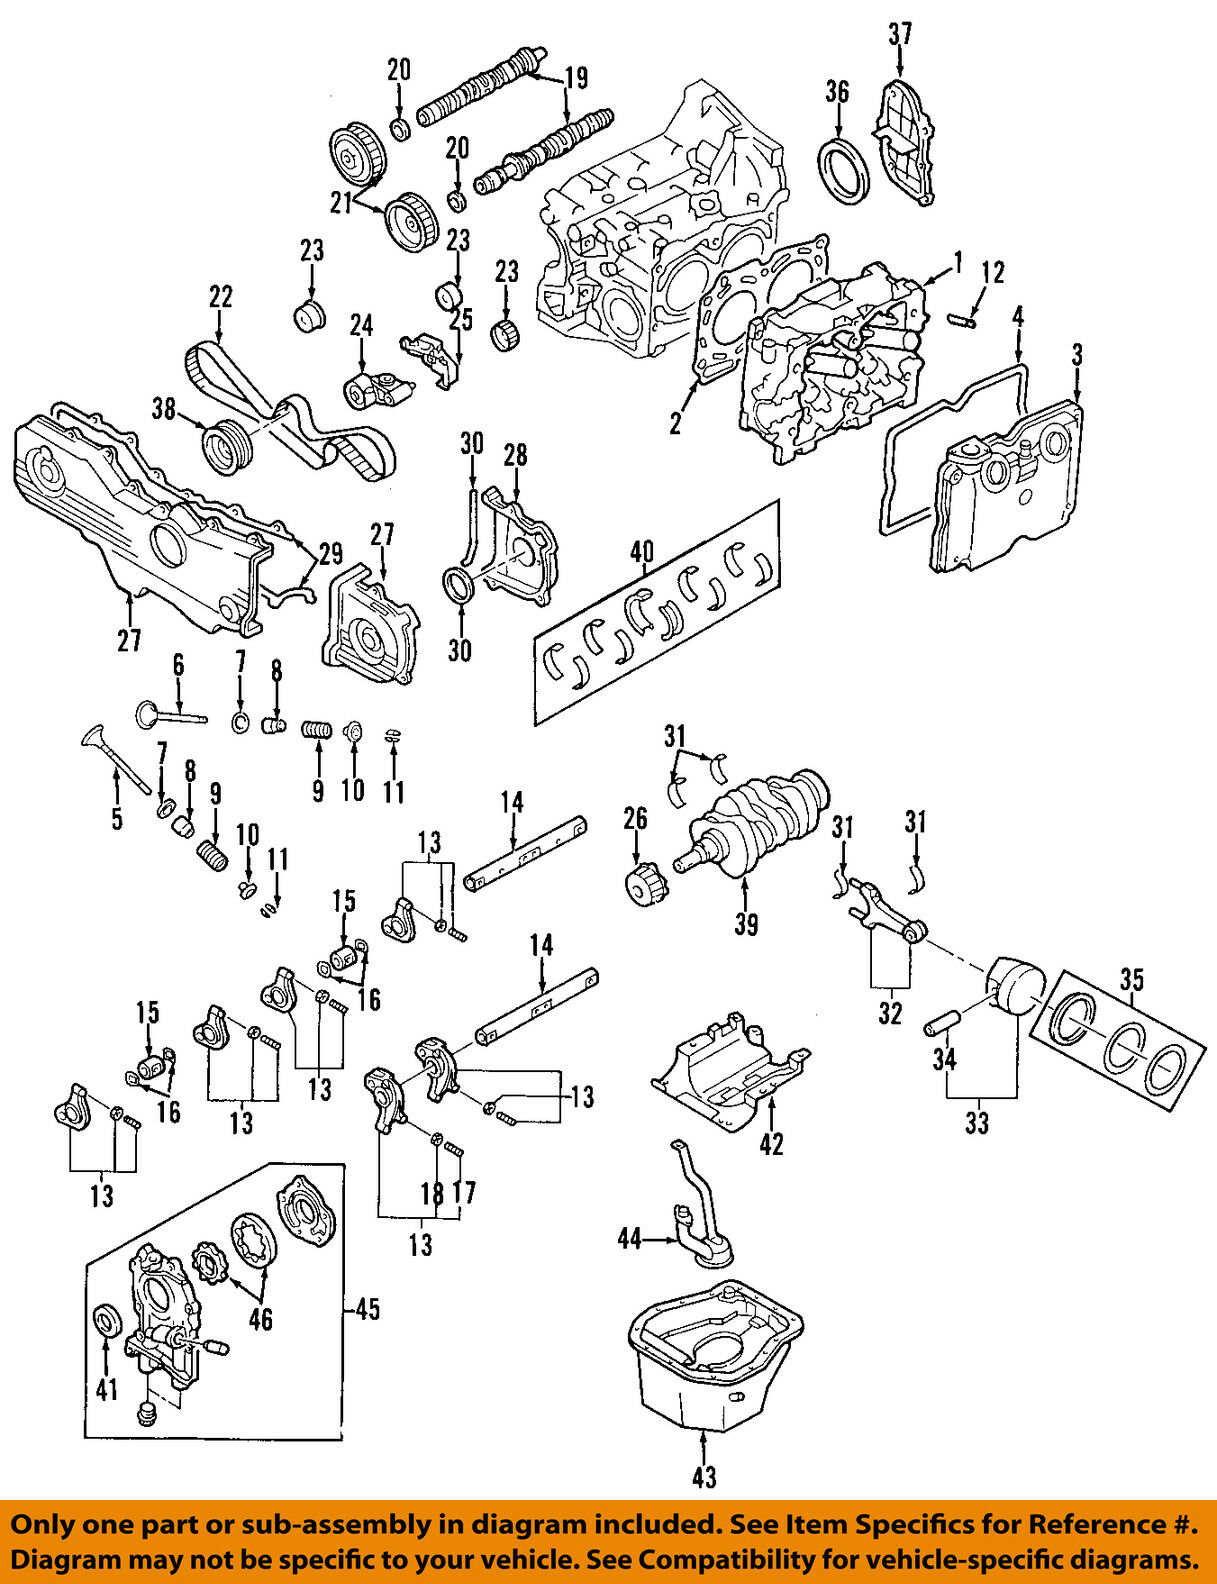 hight resolution of ej25 engine diagram wiring diagram query 2008 subaru boxer engine diagram